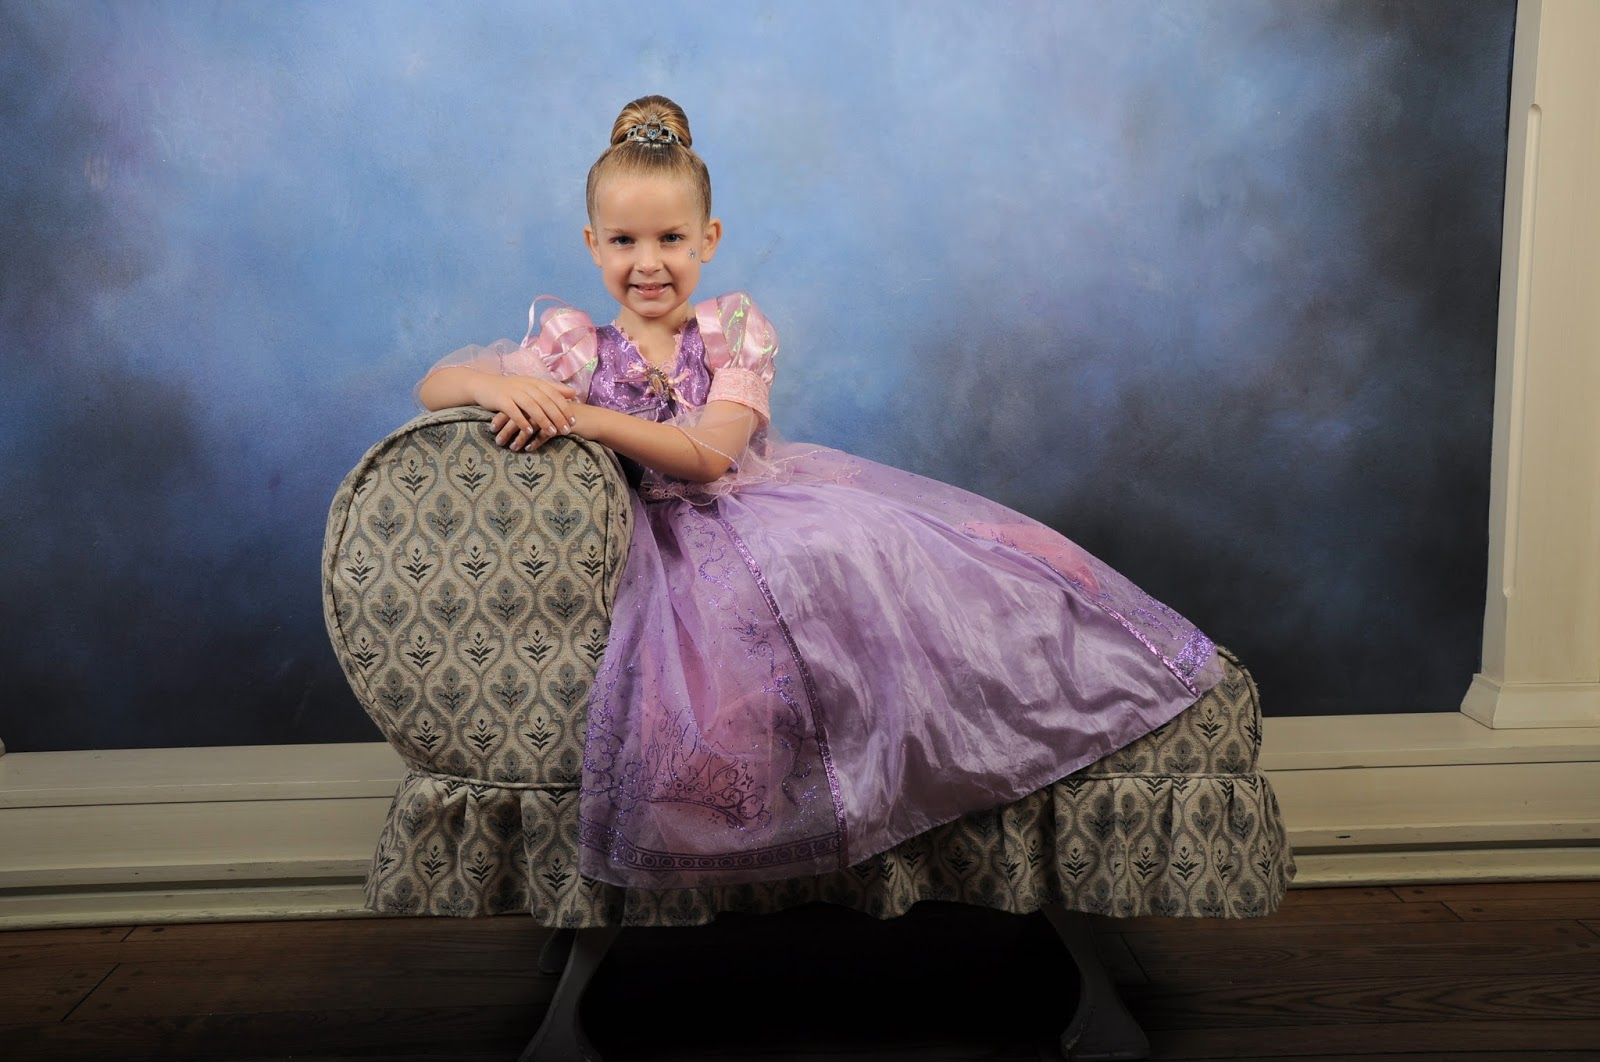 FREE Princess Photo/Modeling Session at Castle Couture at Walt Disney World